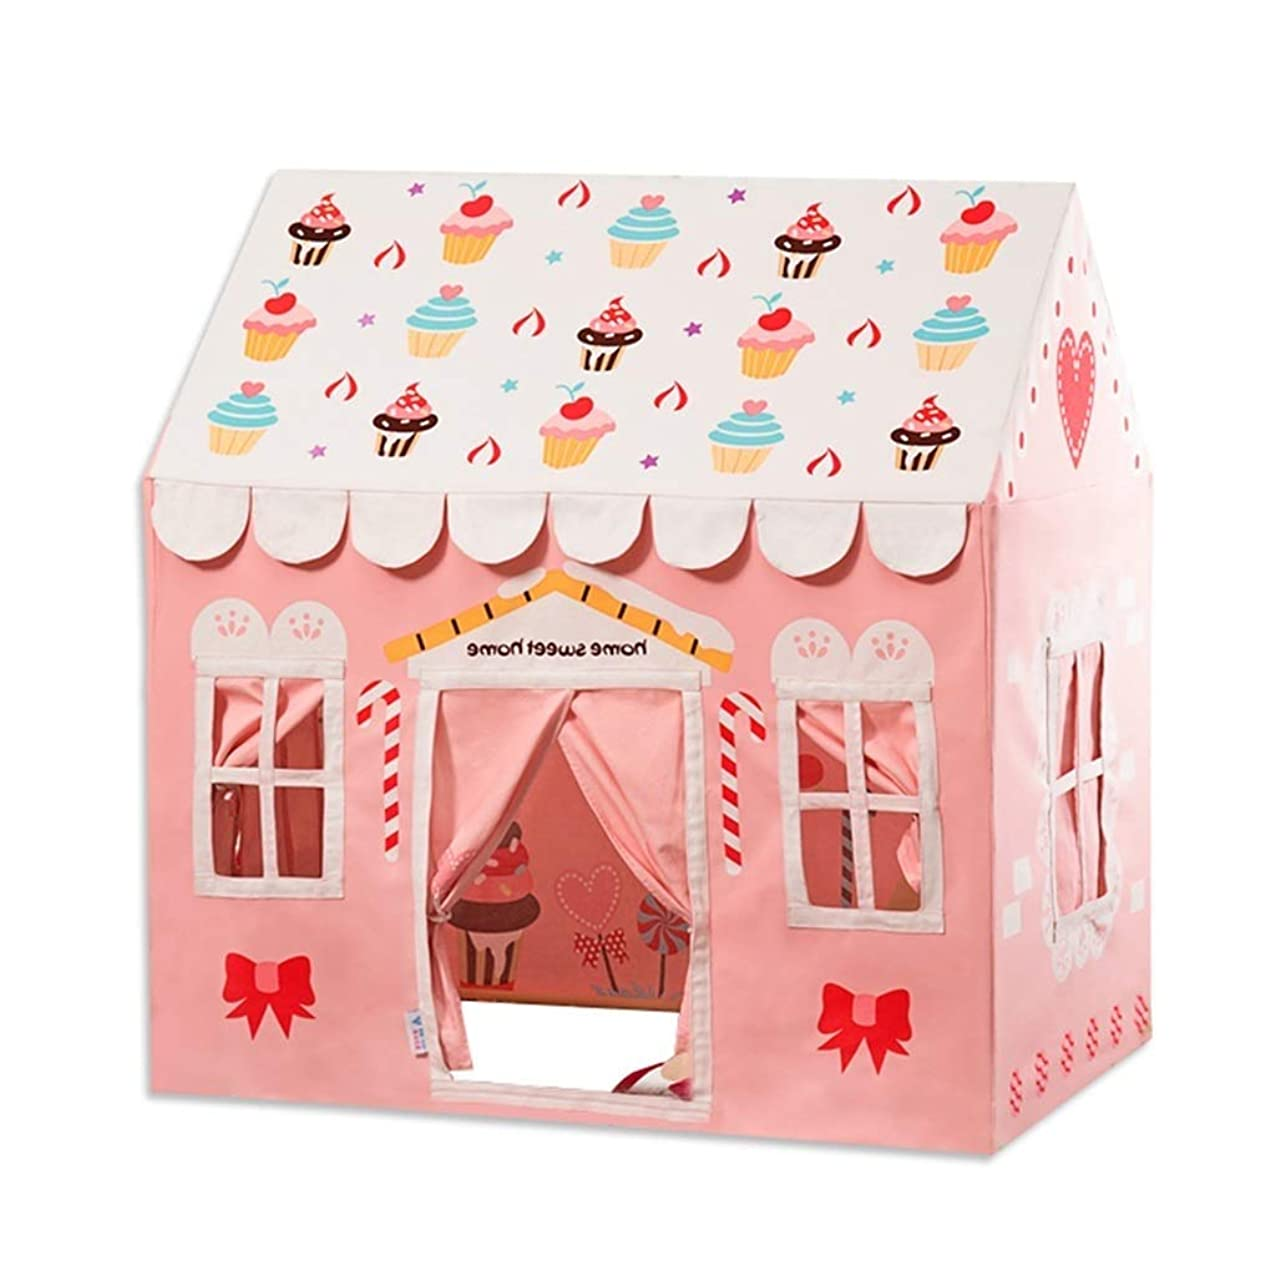 HLWAWA Kids Tent Princess Pink Flower Play Tent for Indoor and Outdoor Fun,Roomy Enough for 2-3 Little Girls Play Together (Color : Pink, Size : L) drxtvjcemgxzh262